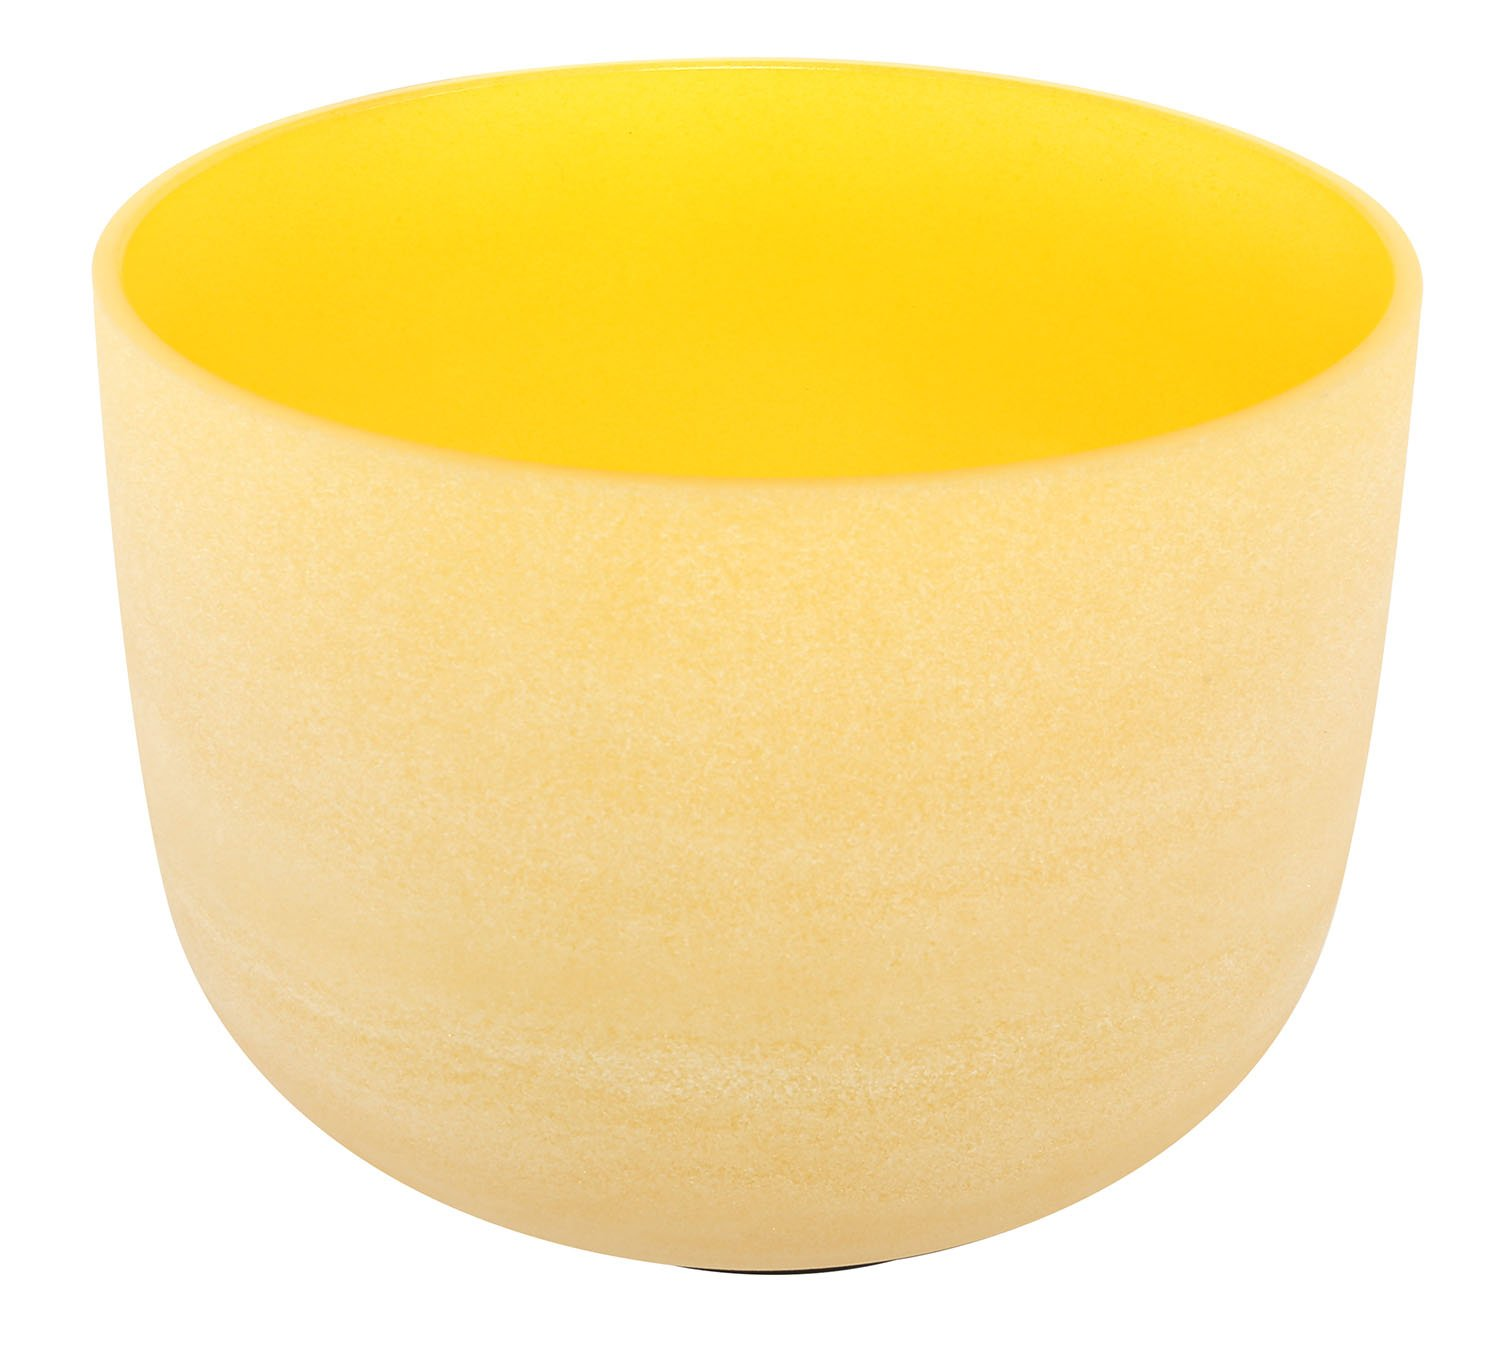 Yellow Color Frosted Crystal Singing Bowl Note E Solar plexus Chakra 13 inch Best and Highest Quality Sound & Material Yellow Rubber Ball Mallet with Wooden Handle Included by UBTer